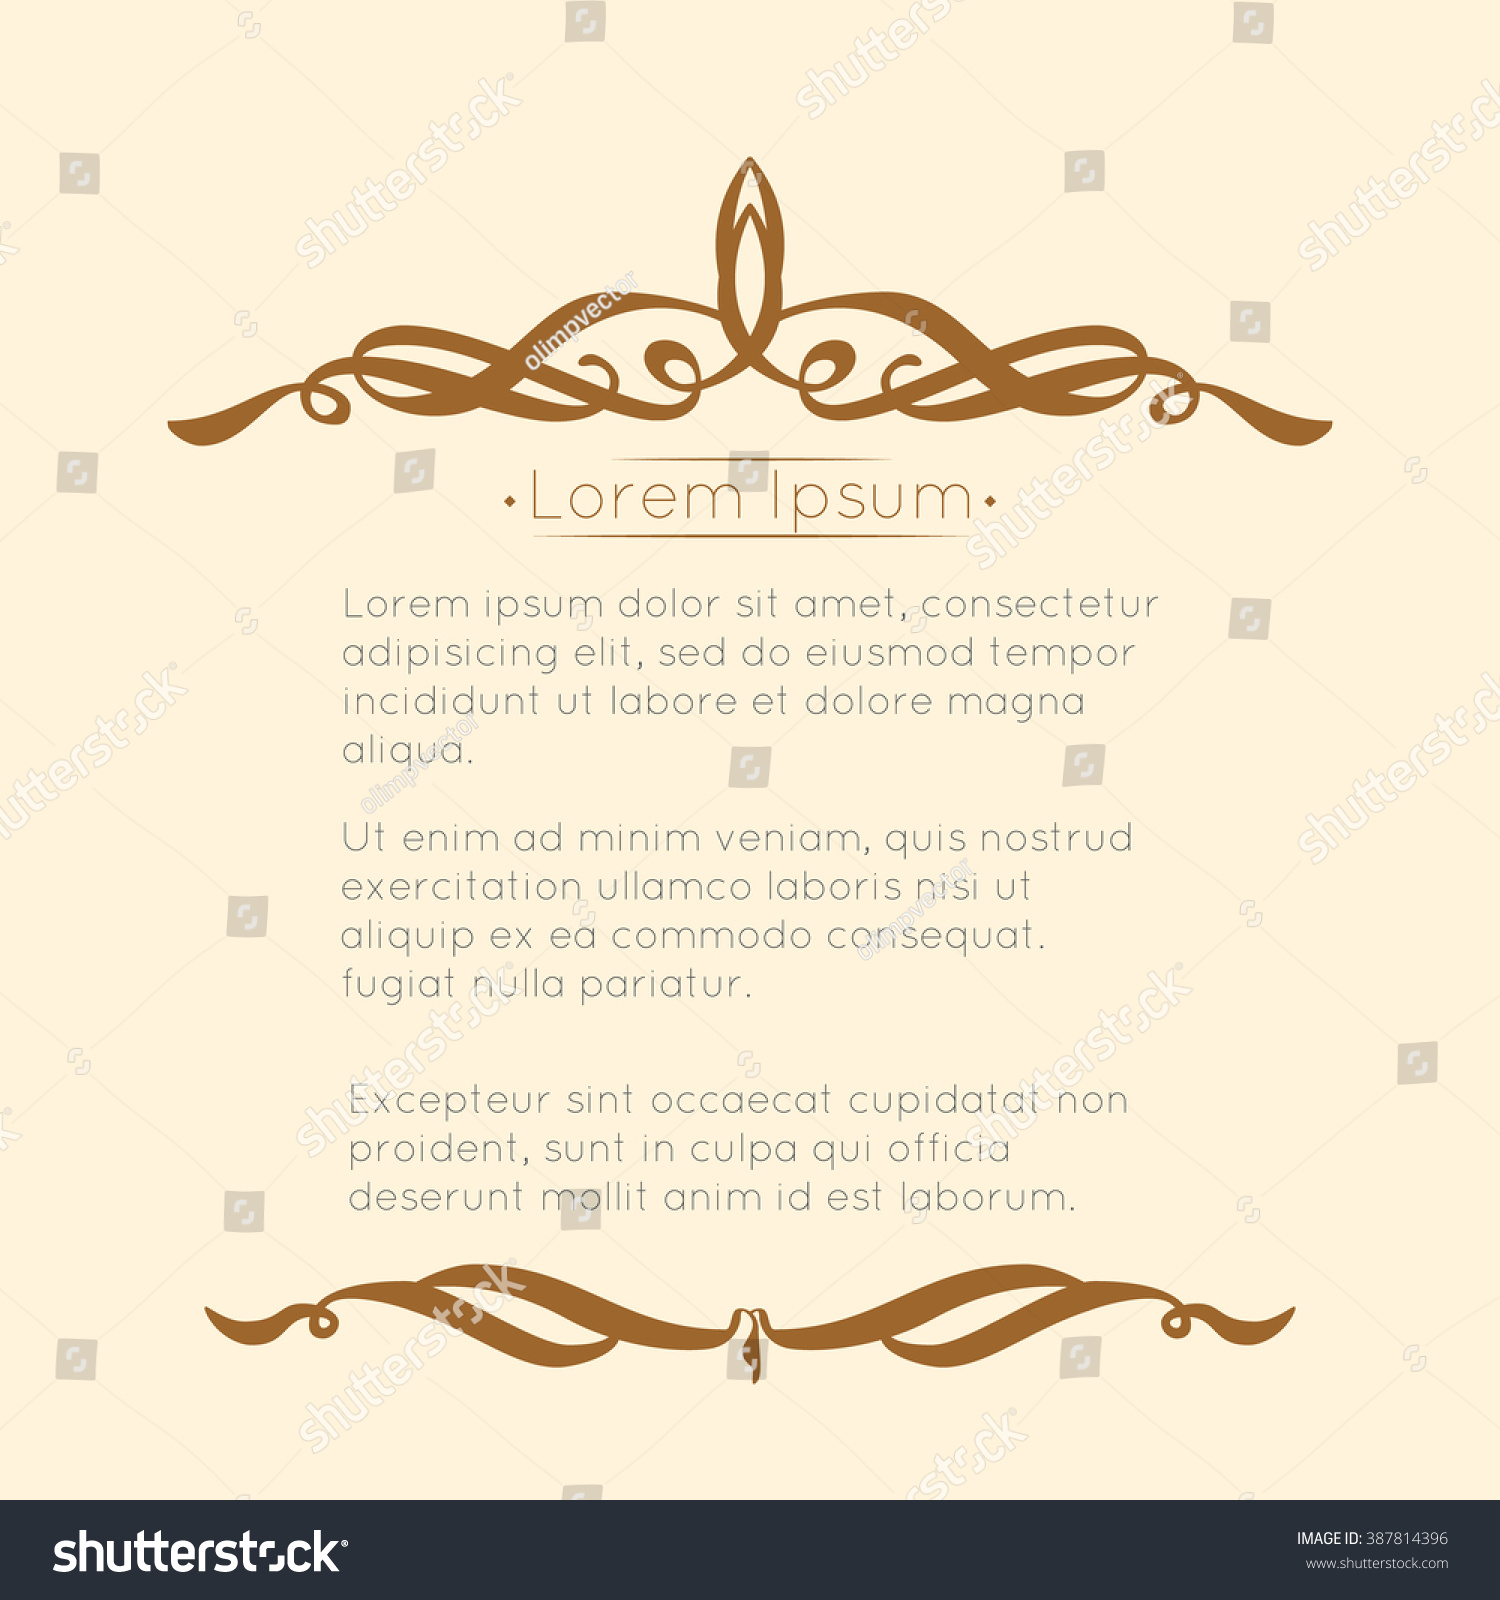 Border designs greeting cards template design stock vector 387814396 border designs for greeting cards template design for invitation labels poem writing stopboris Image collections